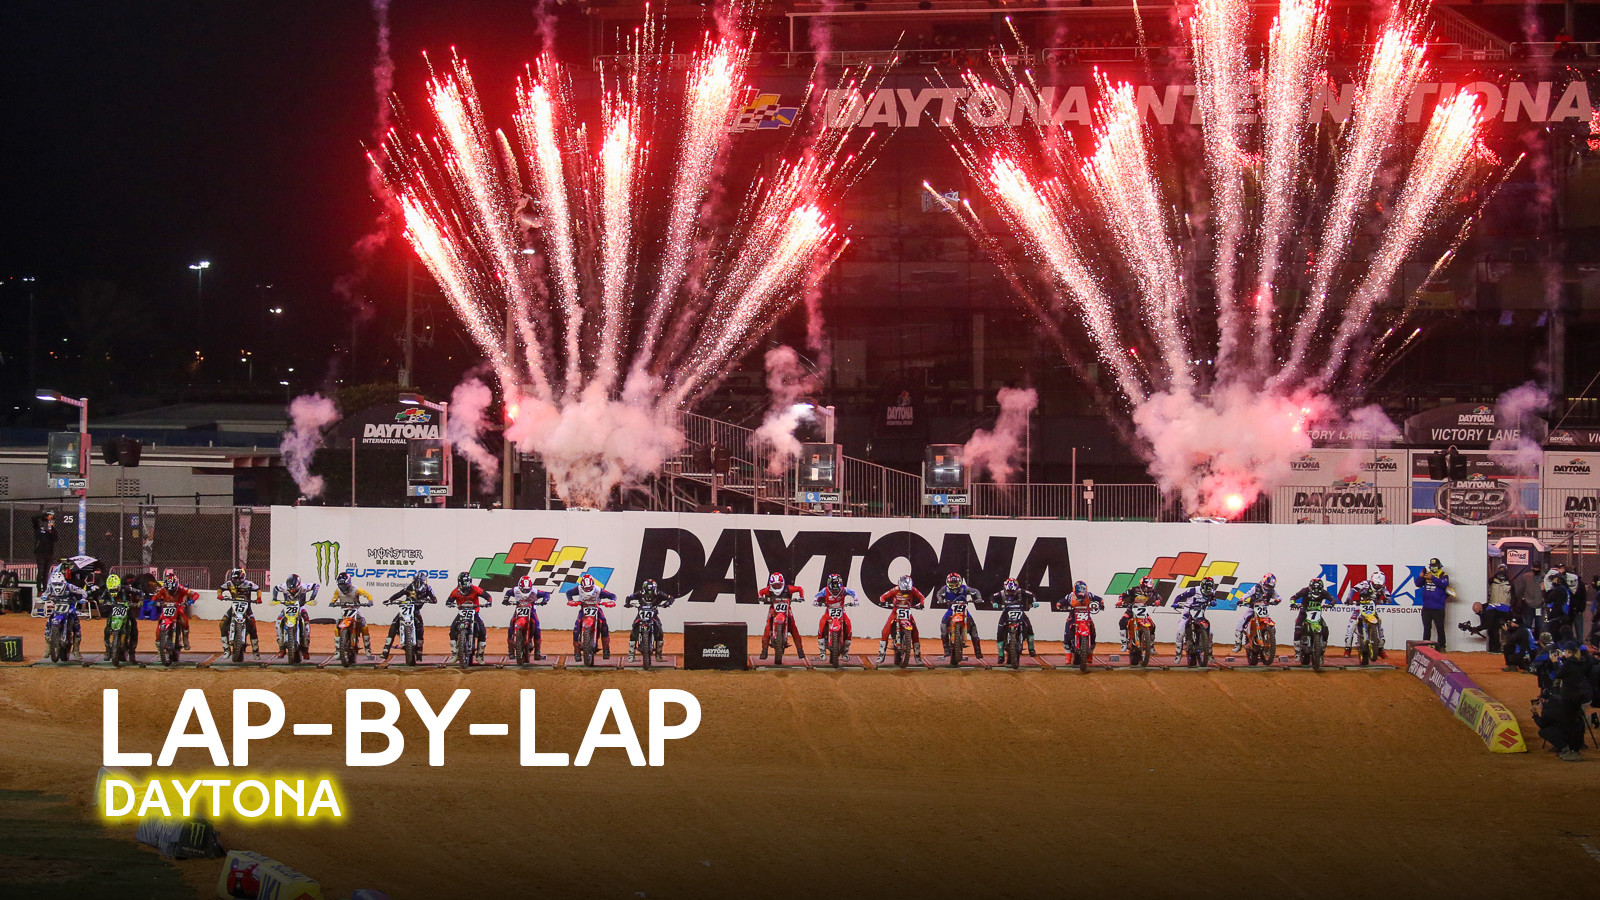 Lap-By-Lap: Daytona